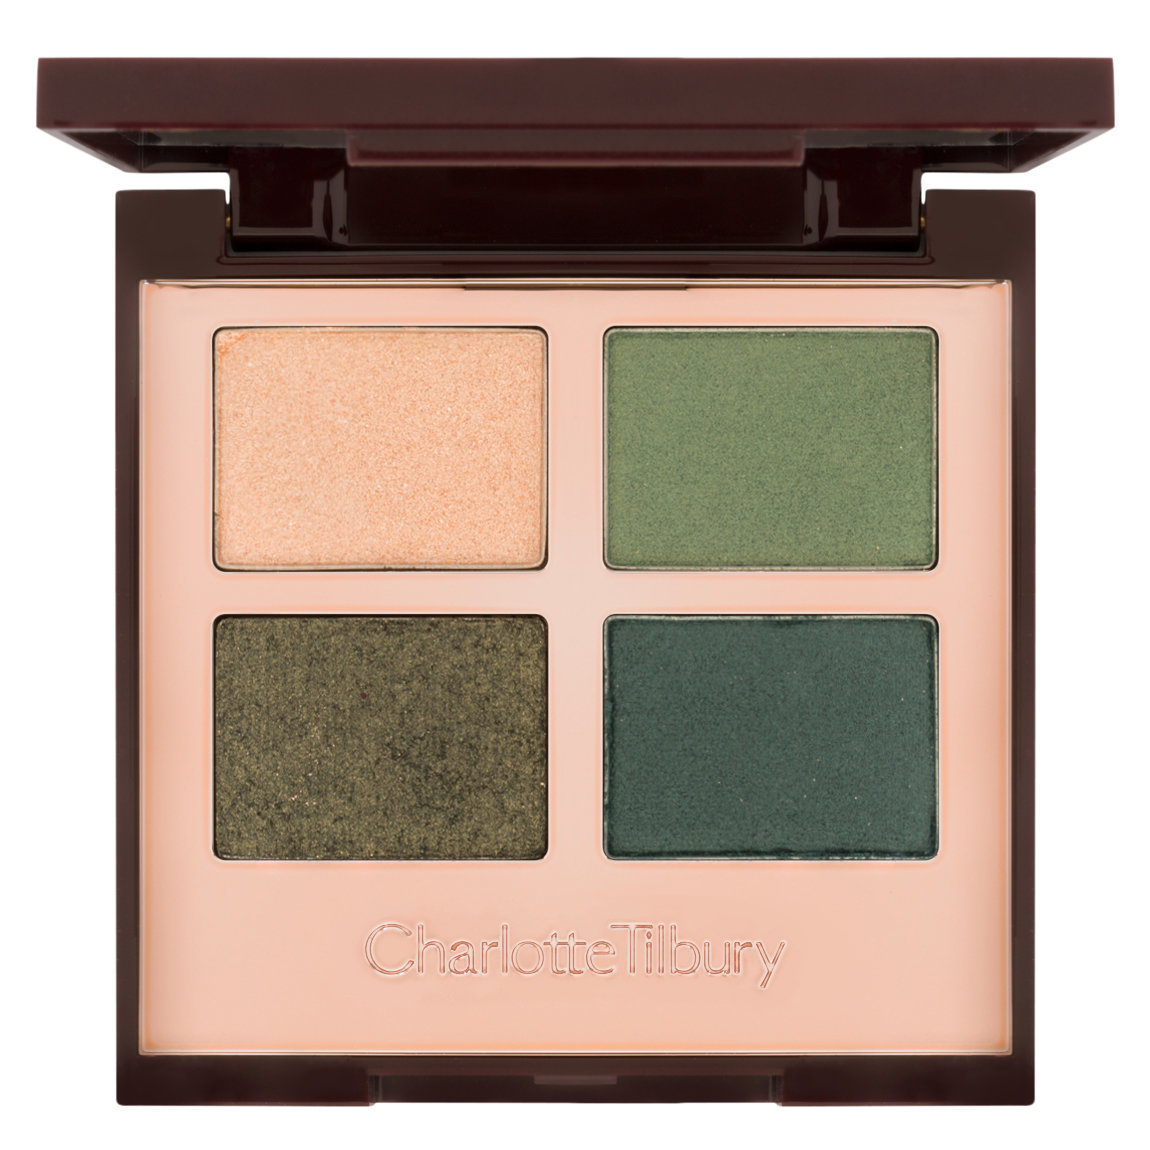 Charlotte Tilbury Luxury Palette The Rebel product smear.